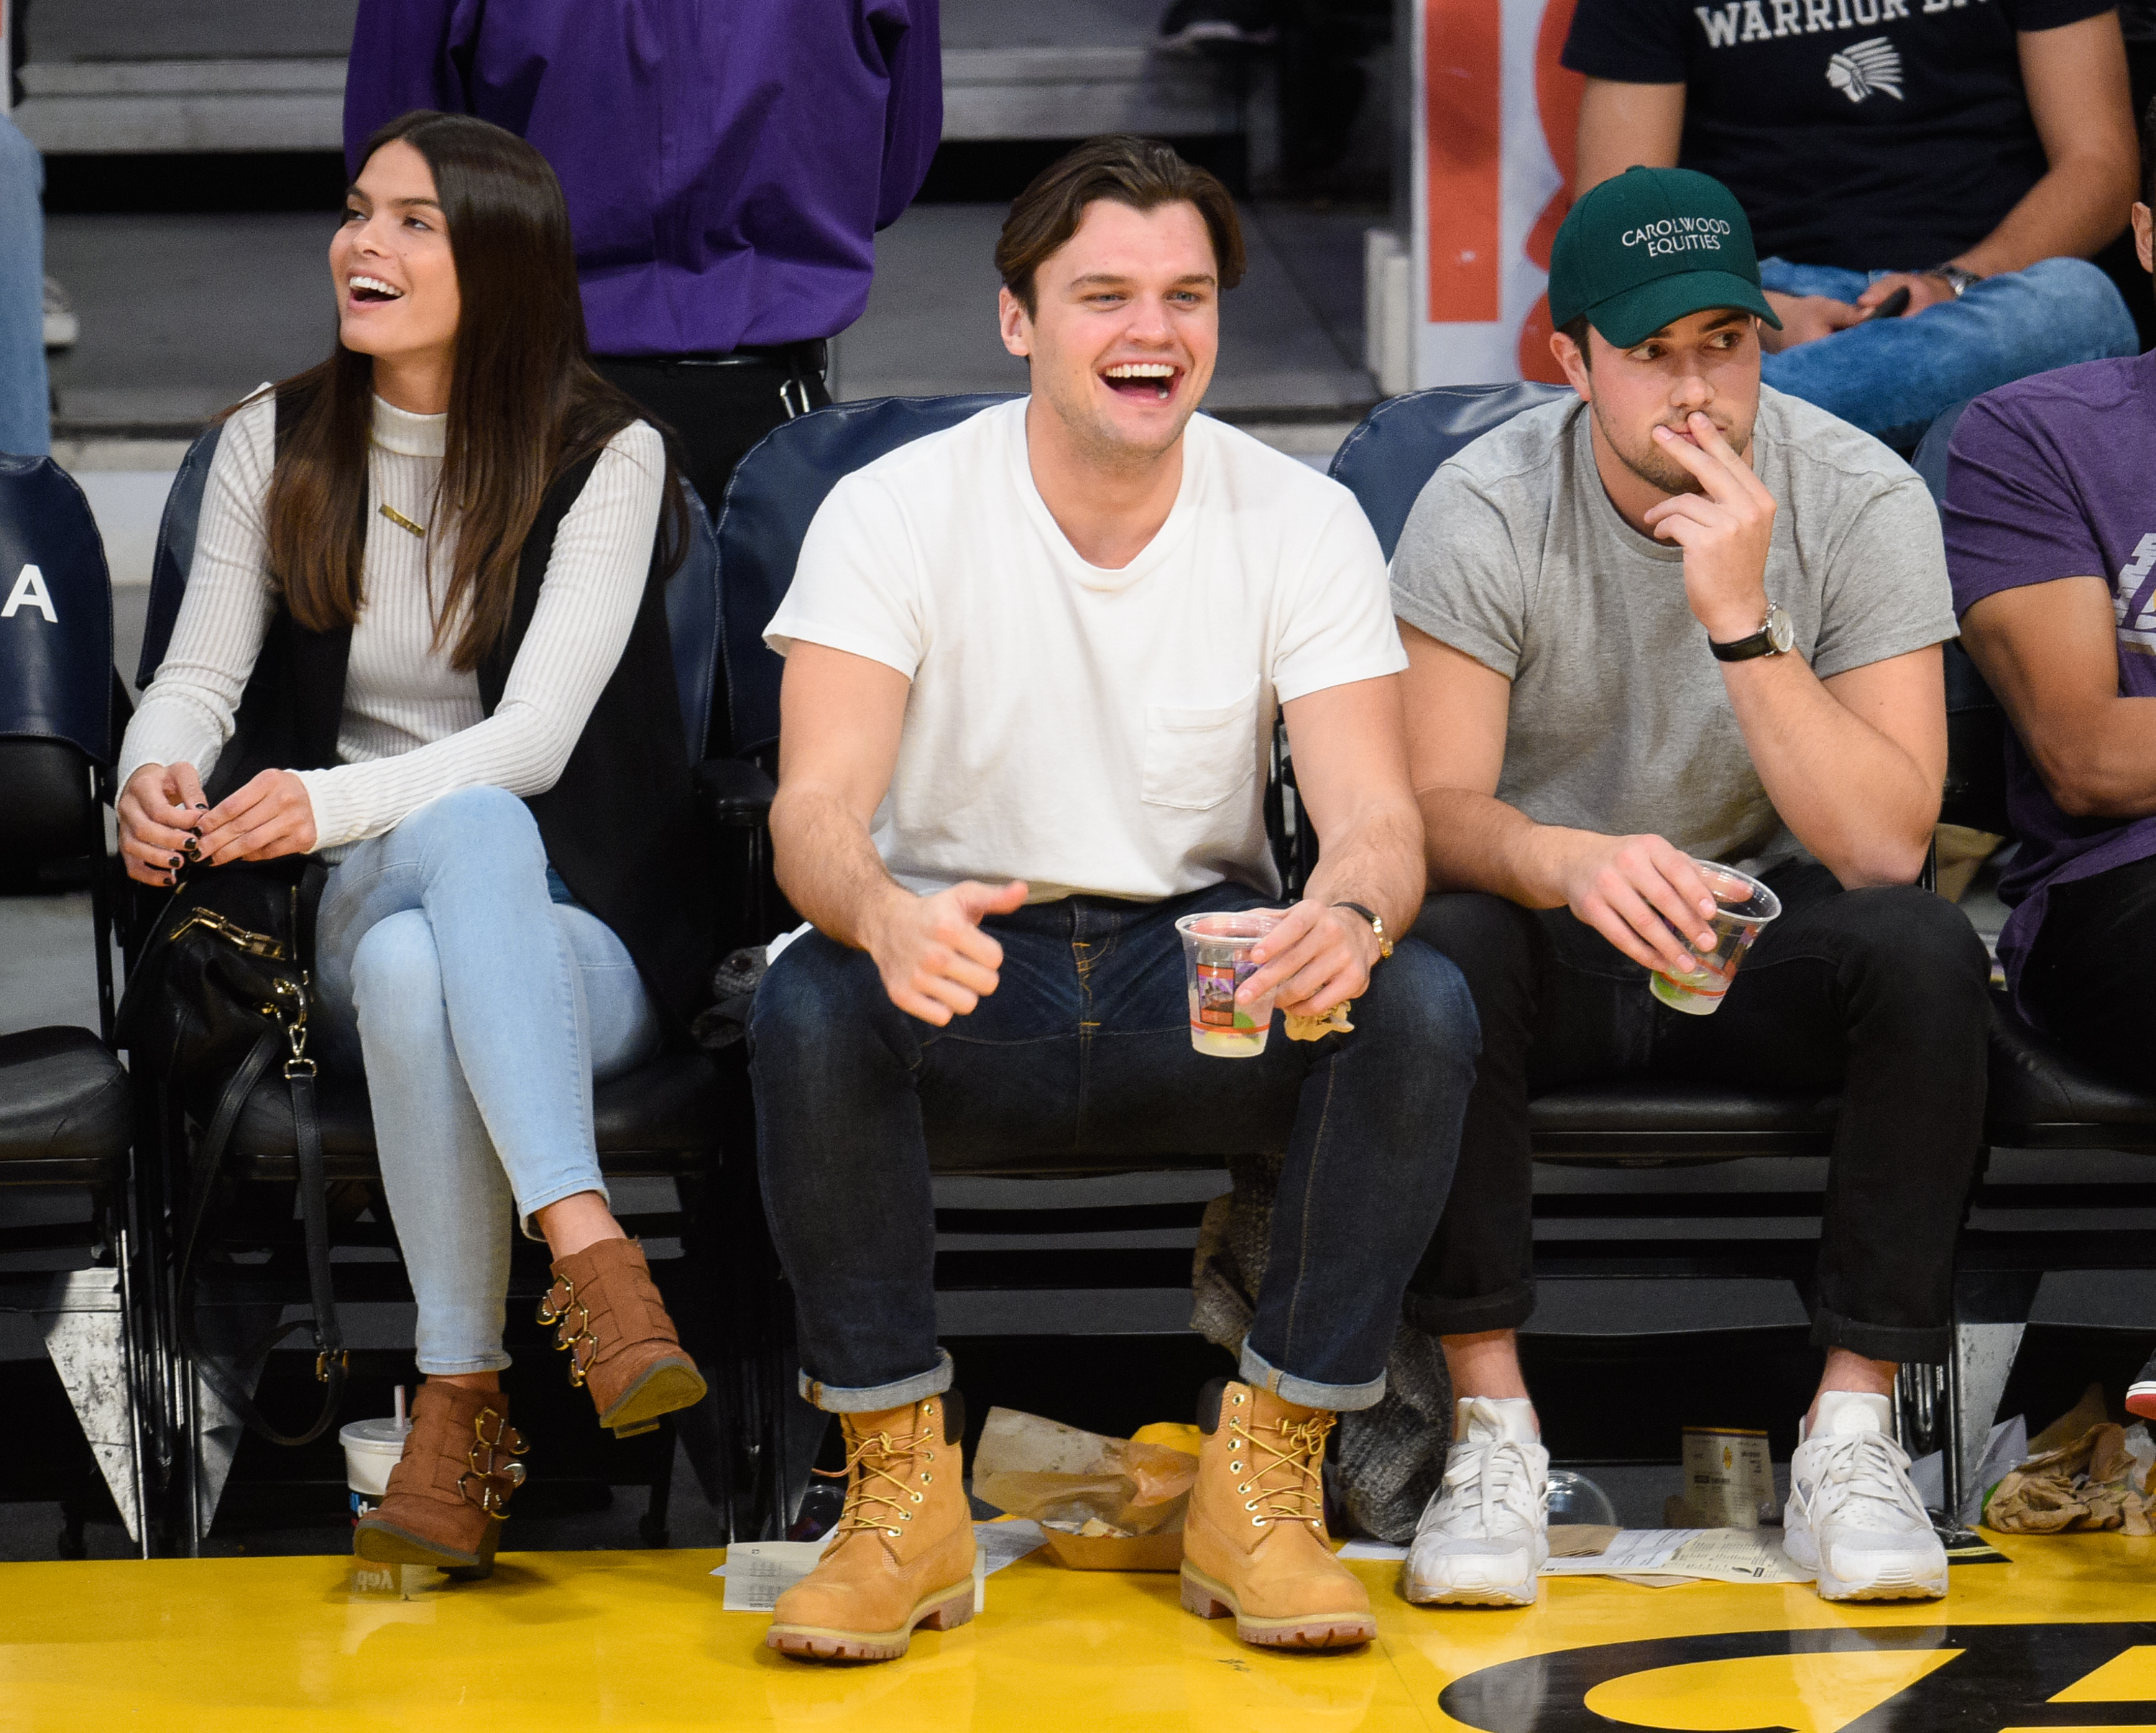 See Leonardo Dicaprio Lookalike Jack Nicholson S Son Photos Time Social media has been buzzing lately about the close resemblance between leonardo dicaprio and jack nicholson's son, ray. https time com 4715496 leo dicaprio ray nicholson lookalike